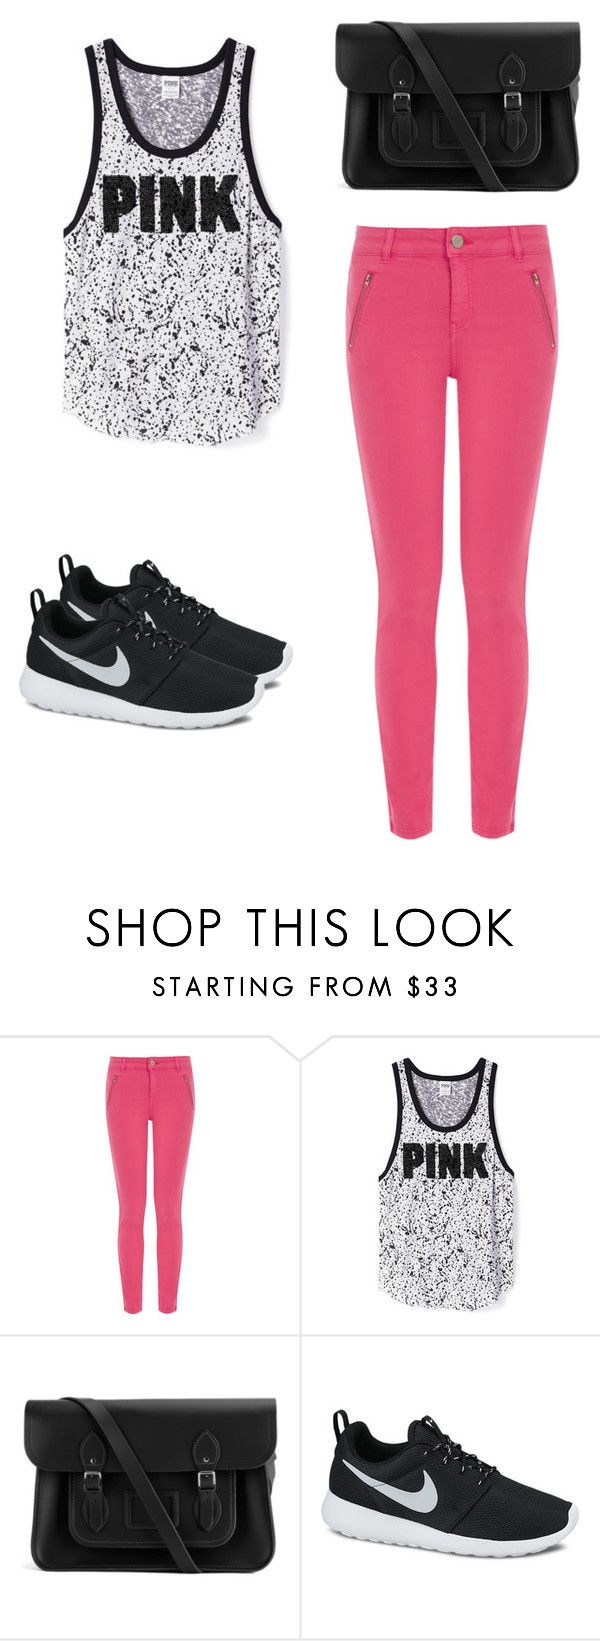 """pink"" by follow-me100 ❤ liked on Polyvore featuring Oasis, The Cambridge Satchel Company, NIKE, women's clothing, women's fashion, women, female, woman, misses and juniors"